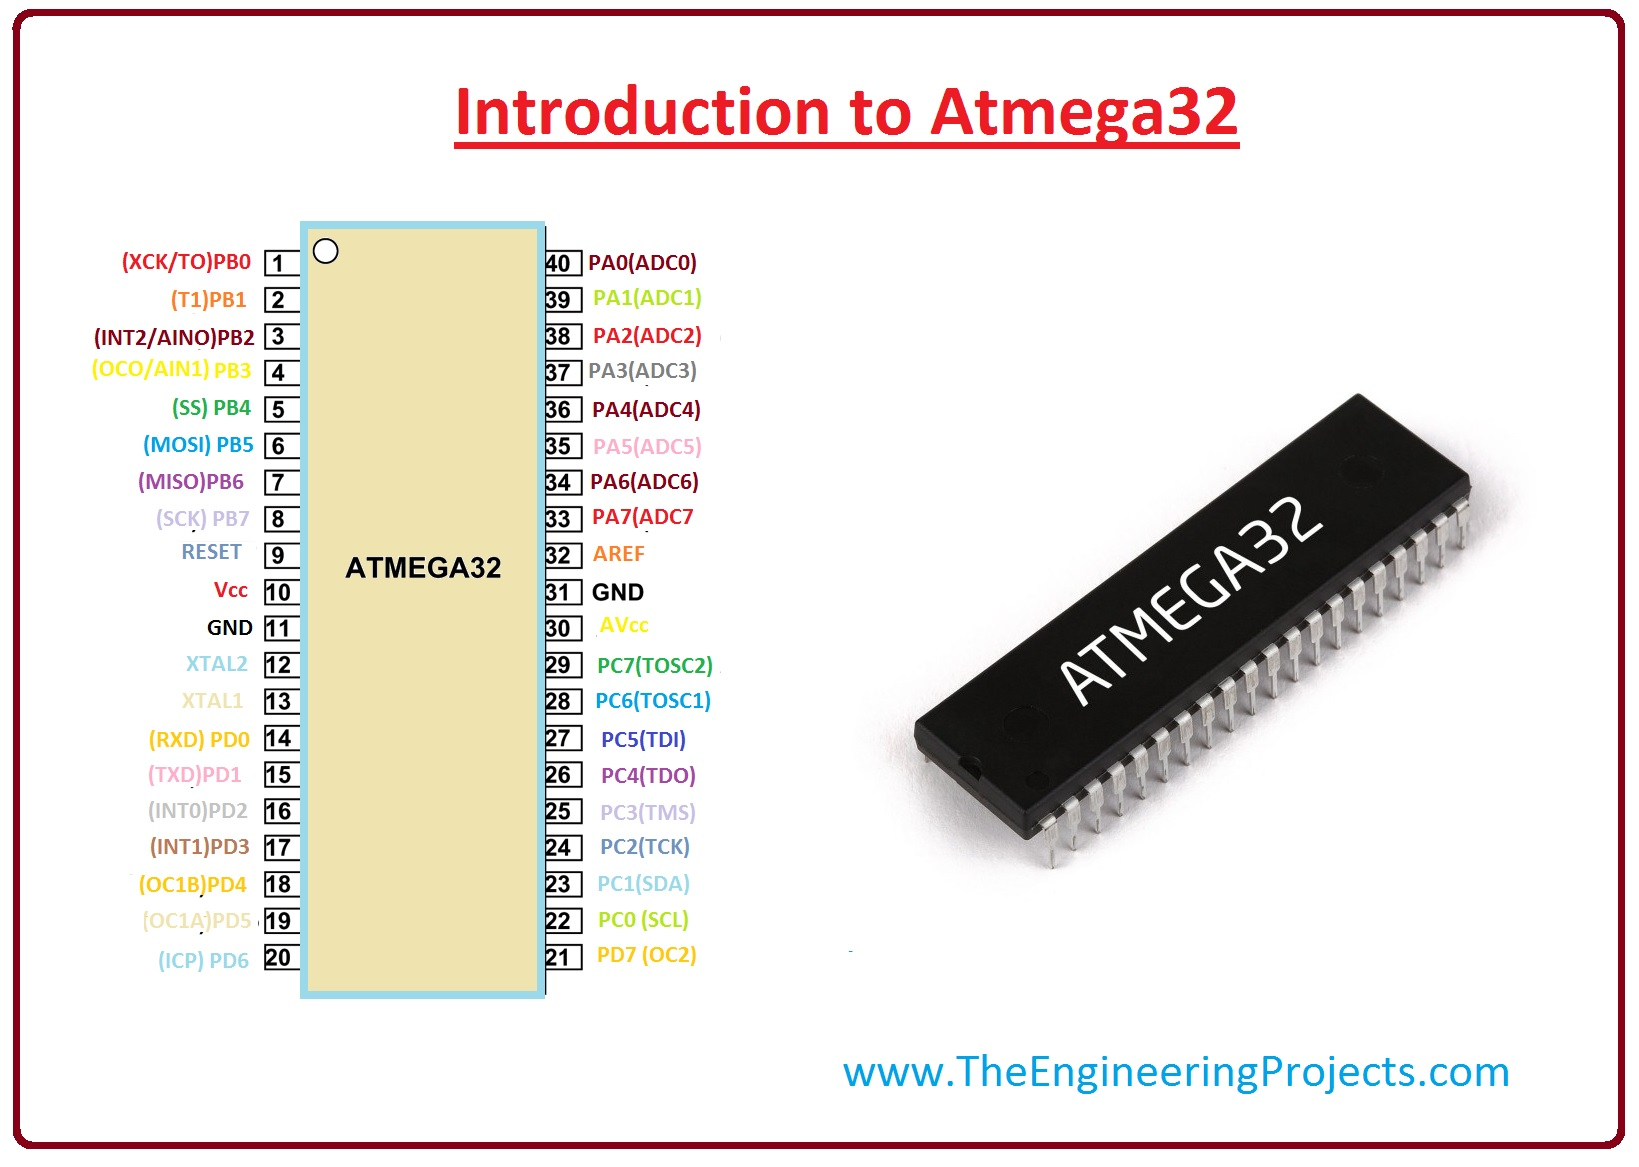 Introduction to Atmega32, Atmega32 pinout, Atmega32 working, Atmega32 features, Atmega32 applications, Atmega32